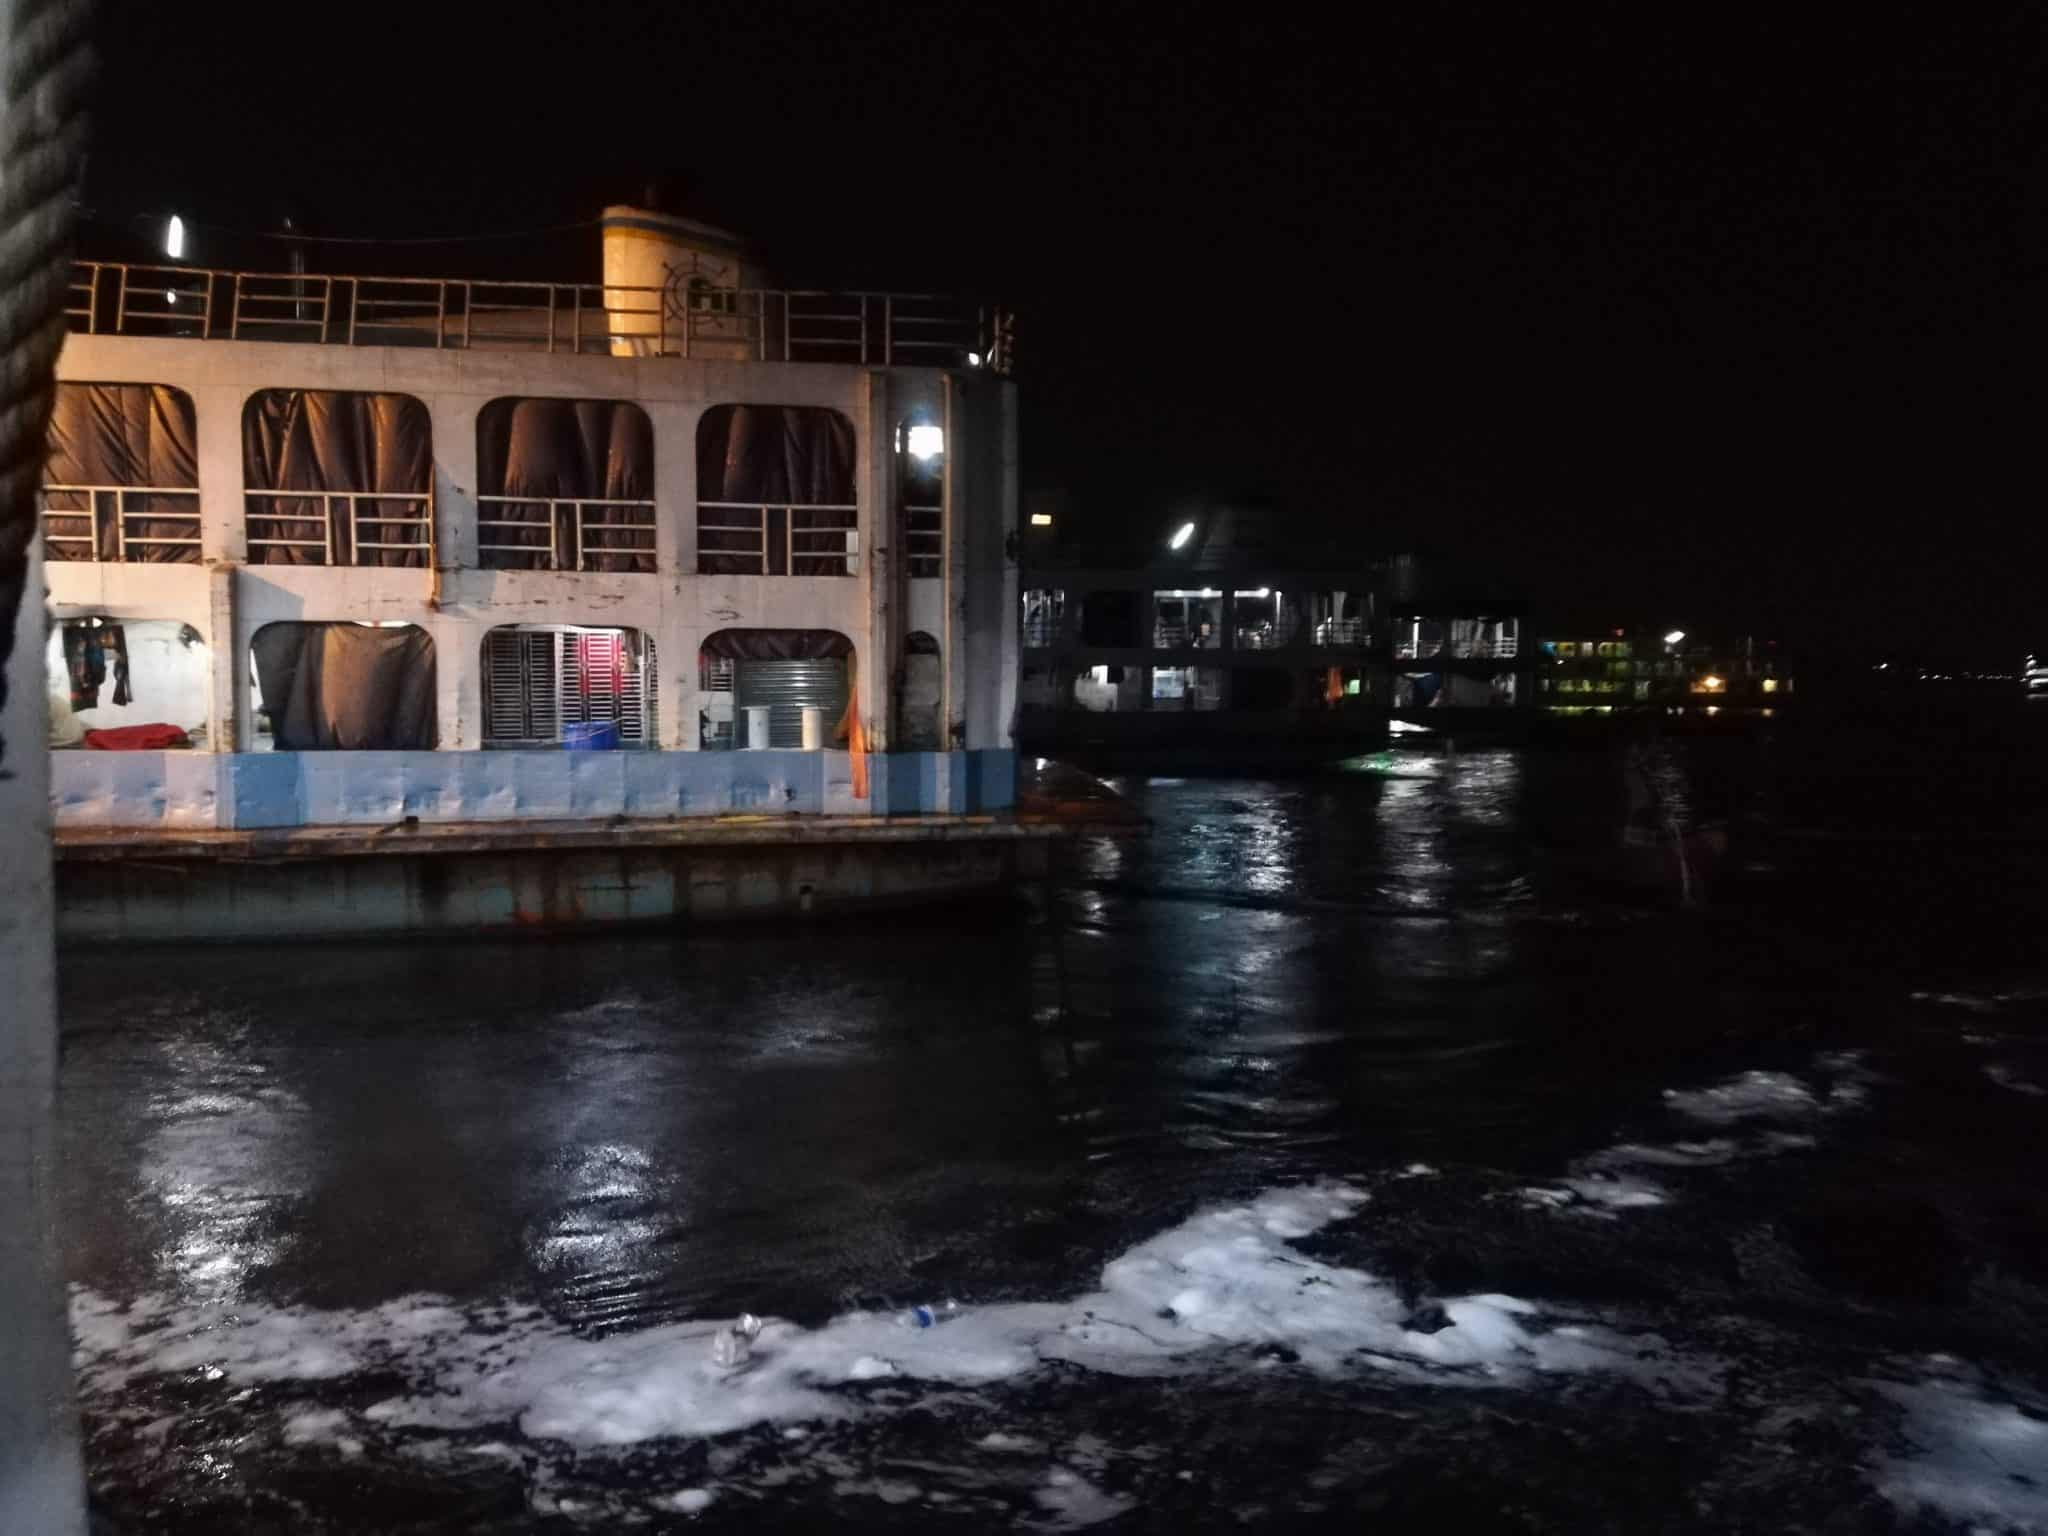 Launches from Hularhat to Dhaka, Bangladesh - Pulling into Dhaka port - Lost With Purpose travel blog